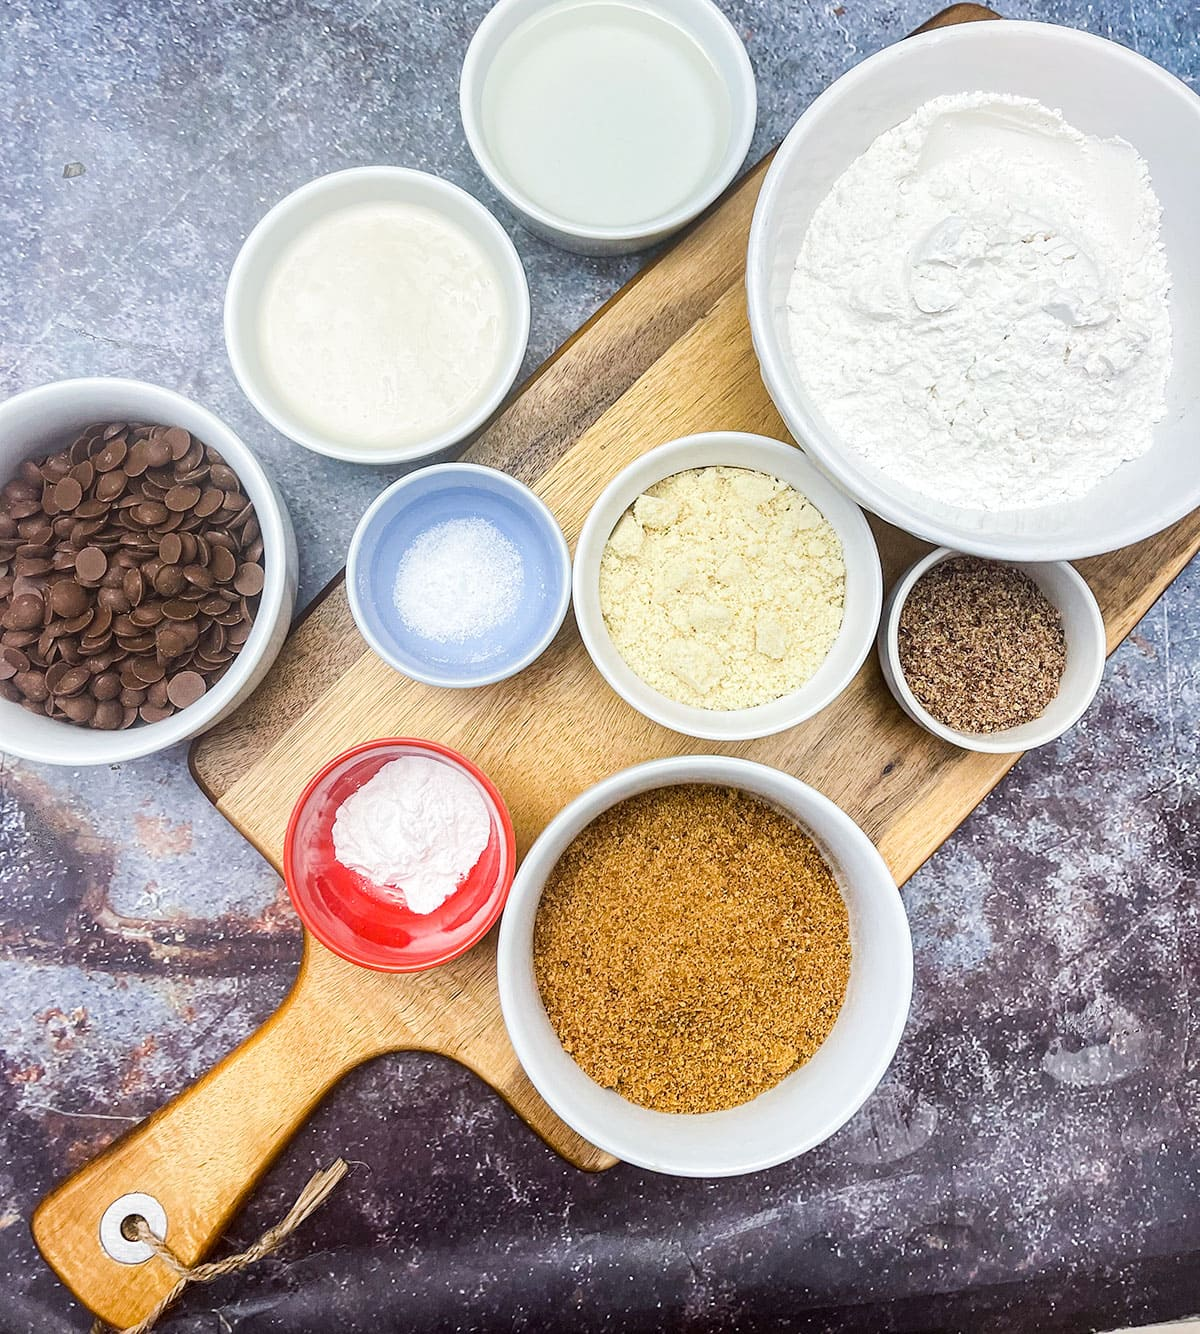 Overlay ingredients for chocolate chips cookies